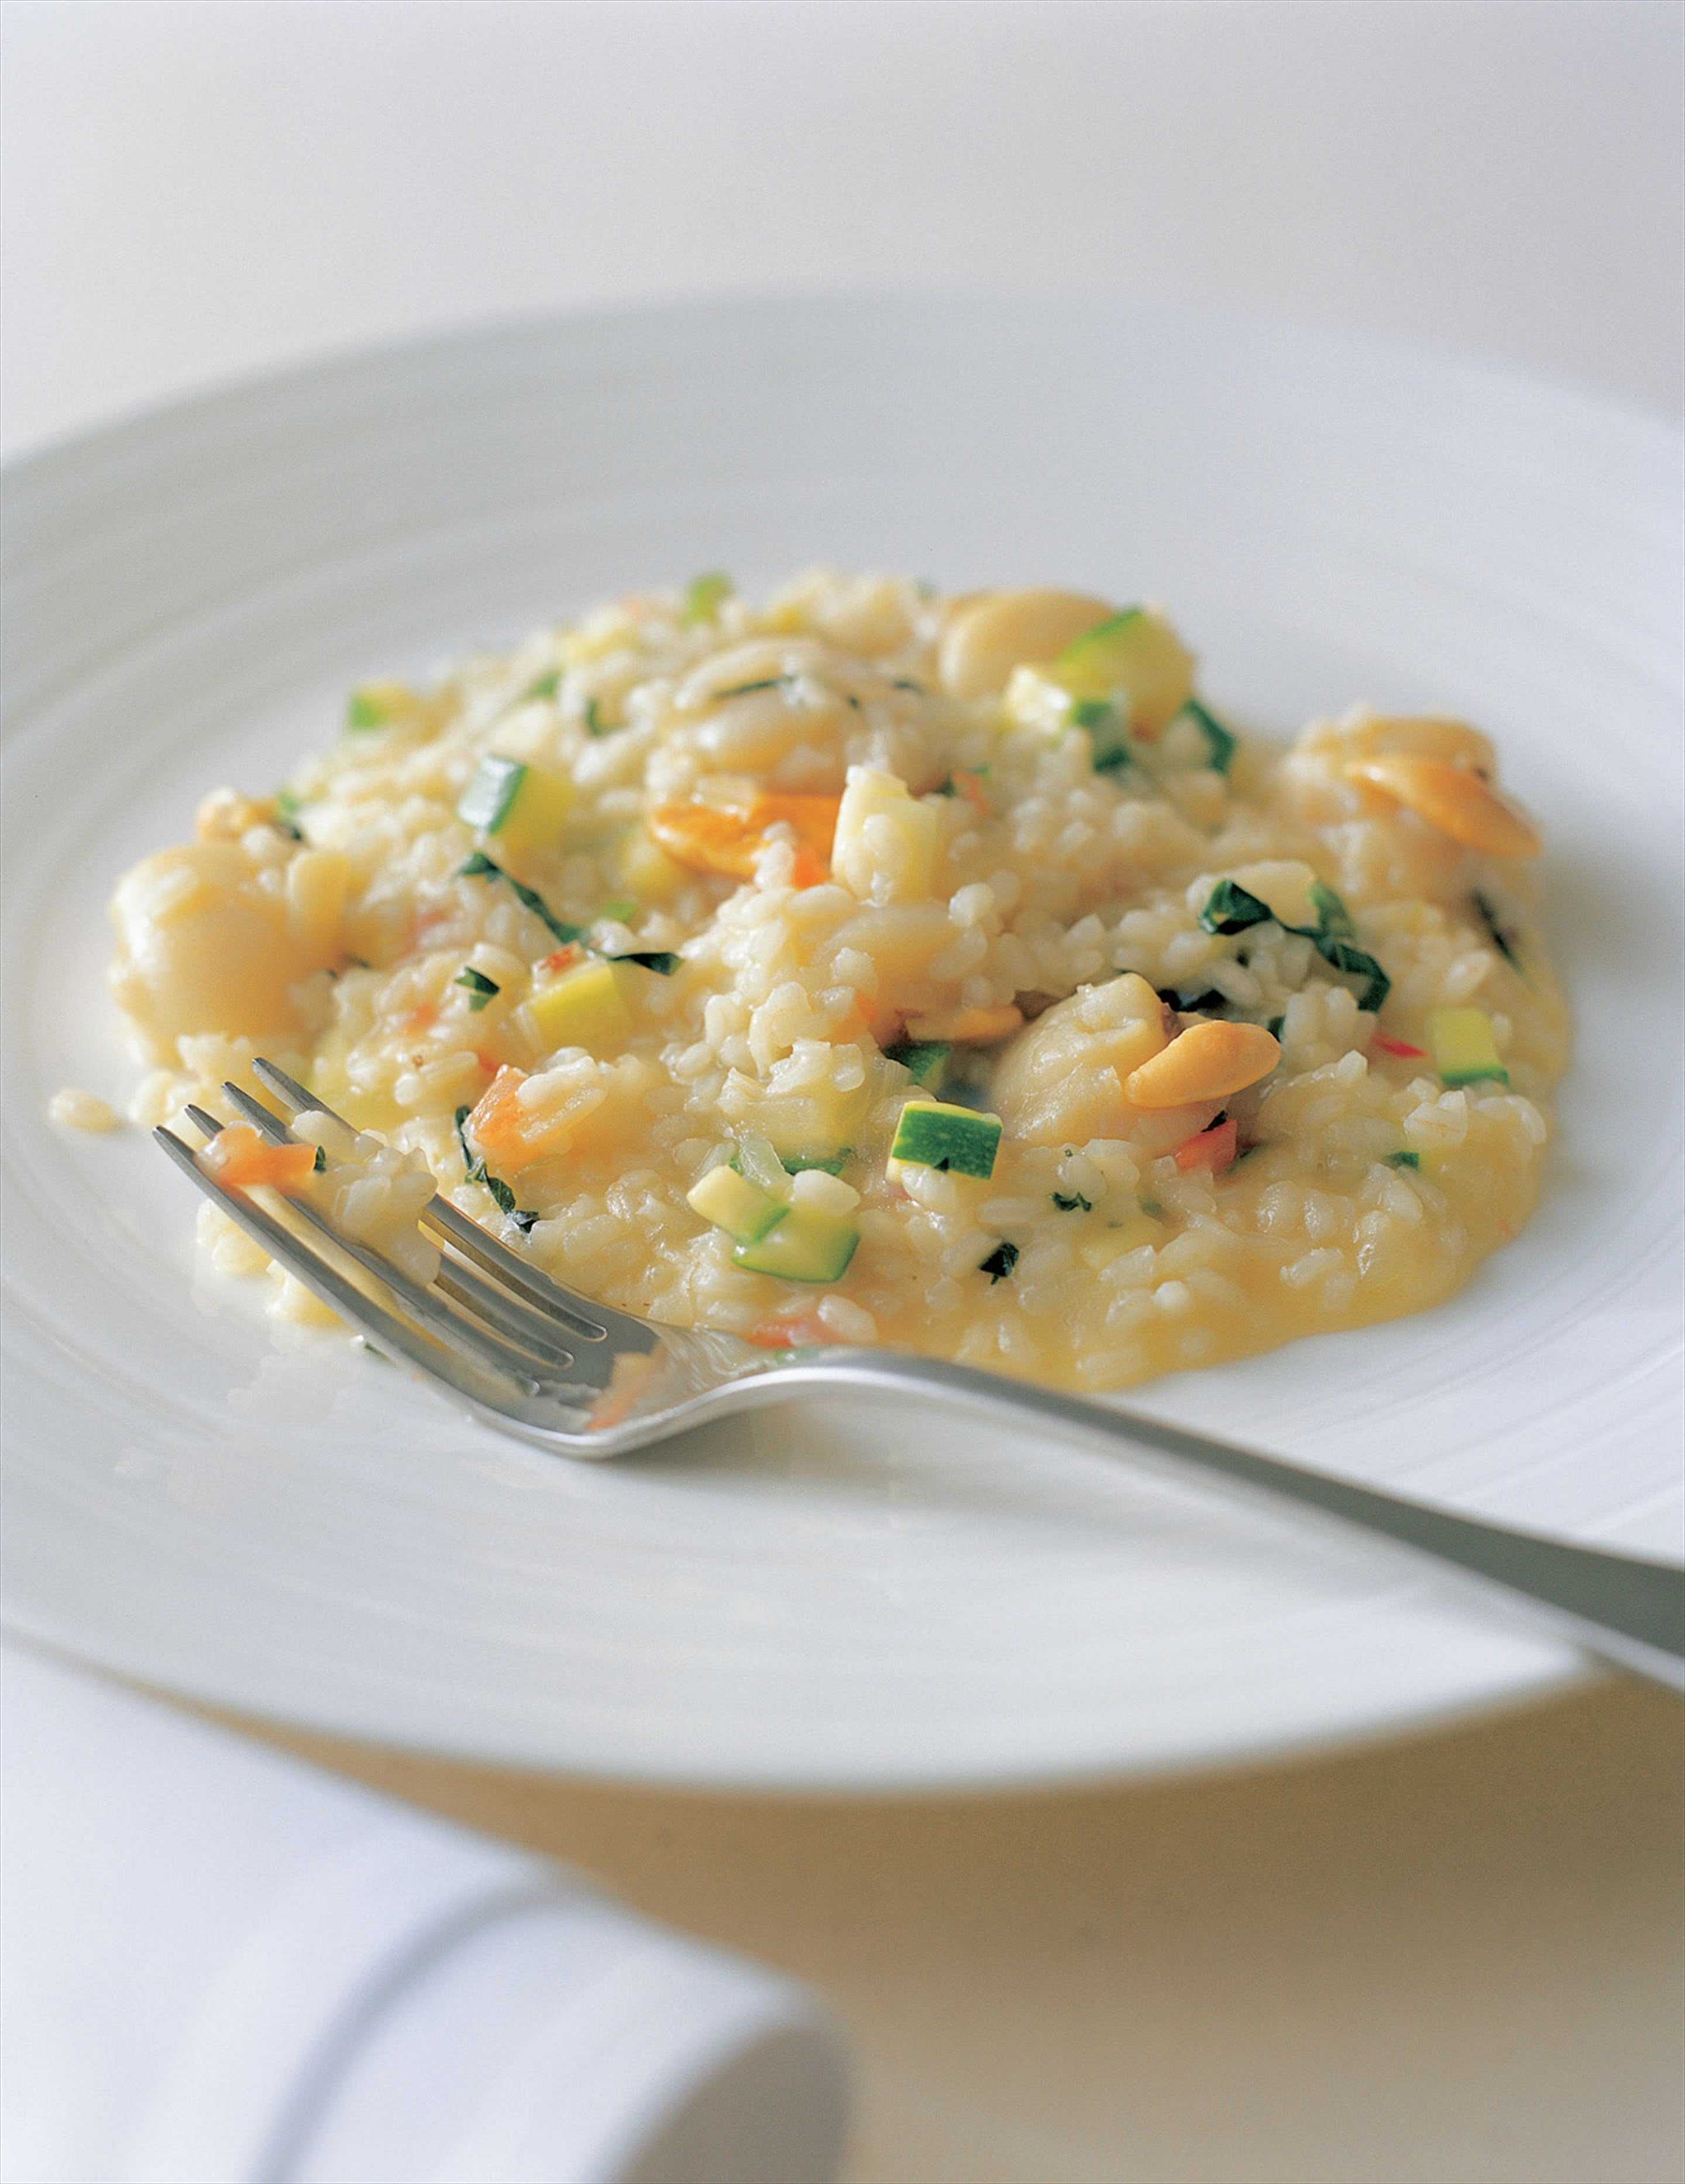 Risotto with scallops and herbs